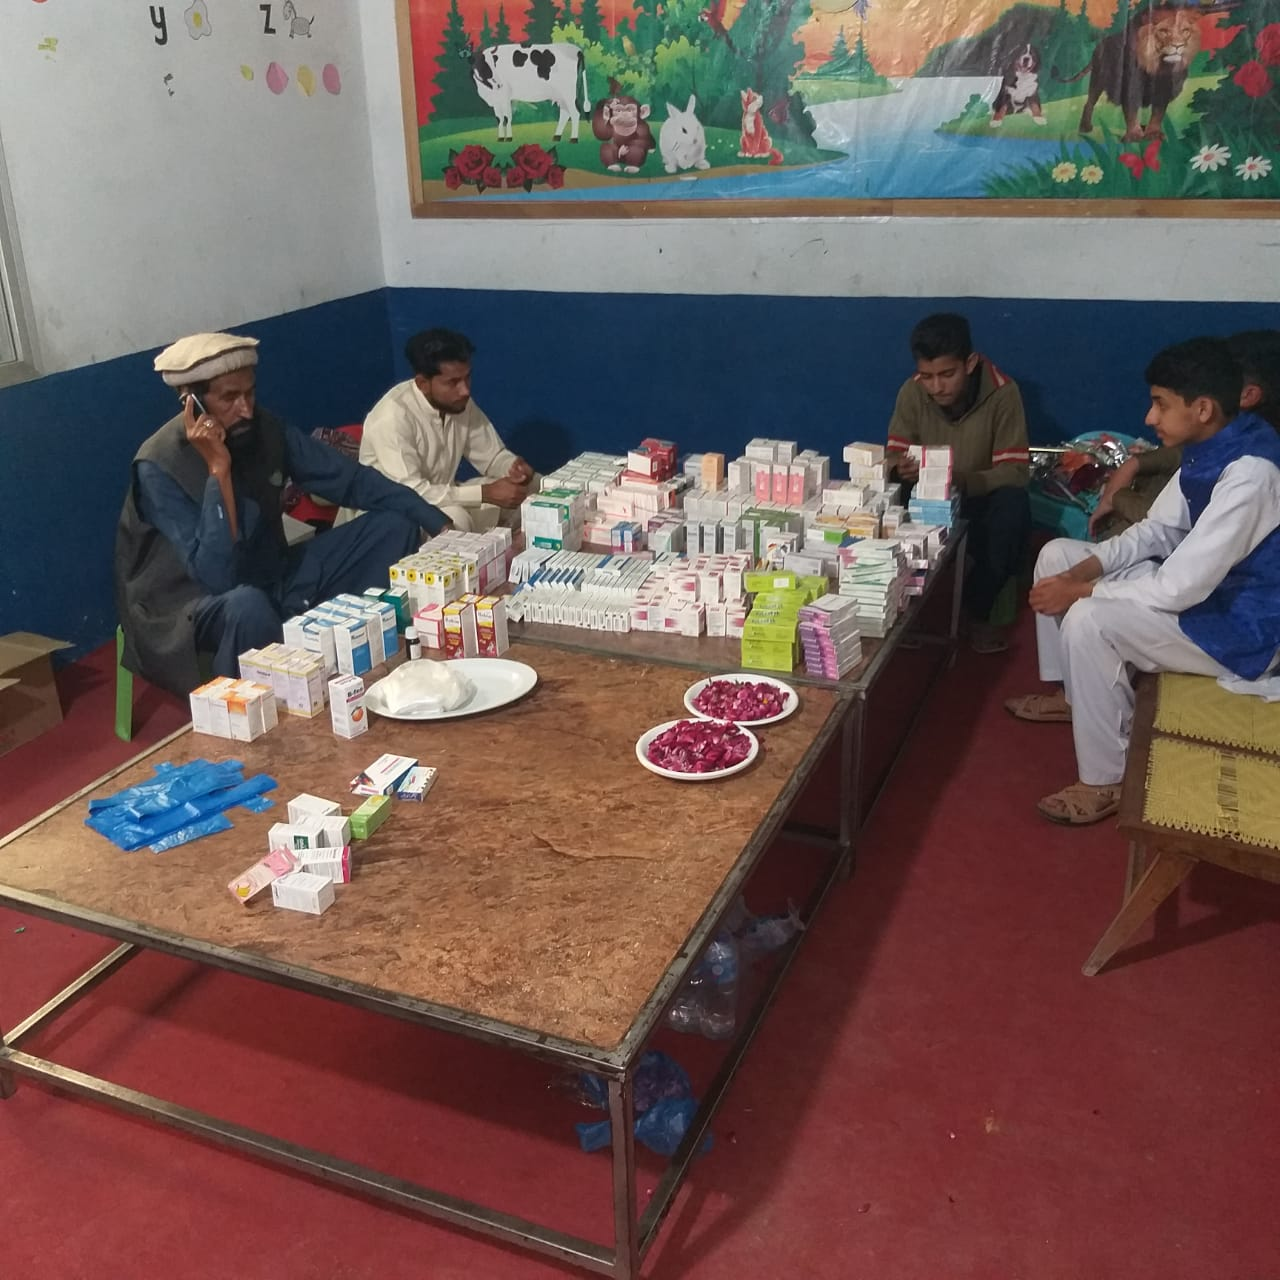 Zilah Chakwal ke ilaqa کھوکھرزیر mein aik roza free medical camp - 3